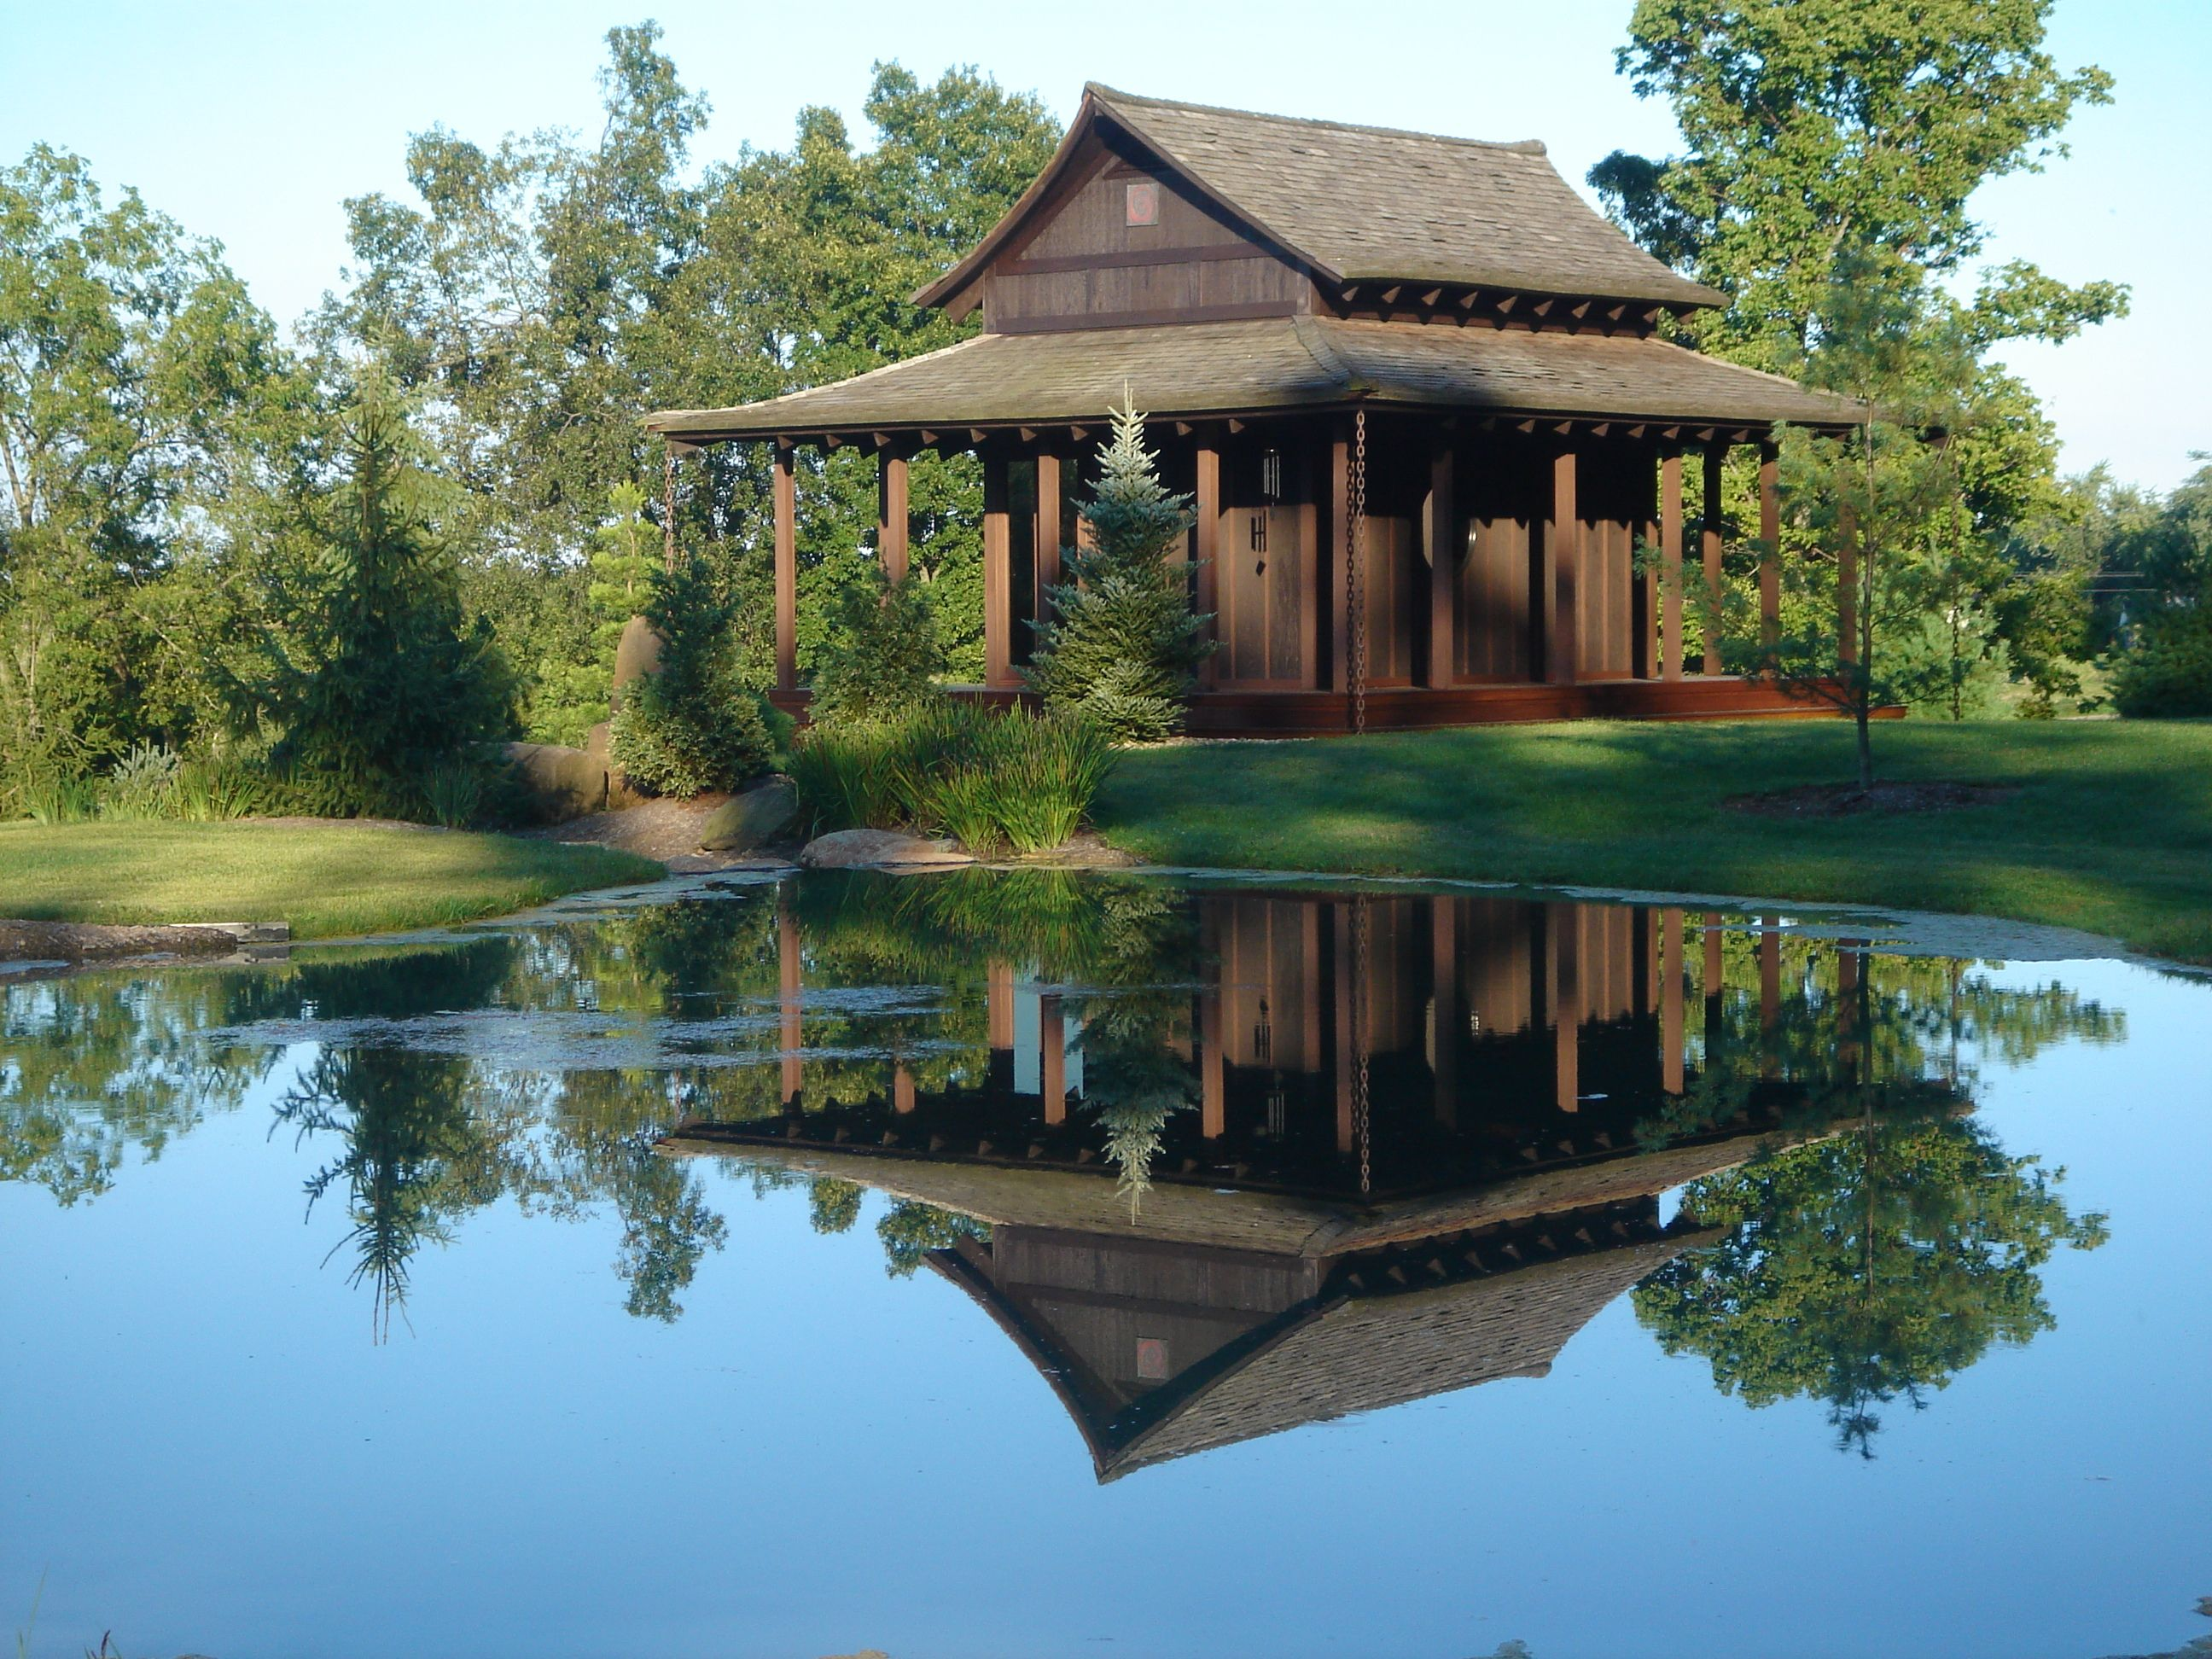 Home Japanese Garden Japanese Tea House | Home: Japanese Homes, Temples